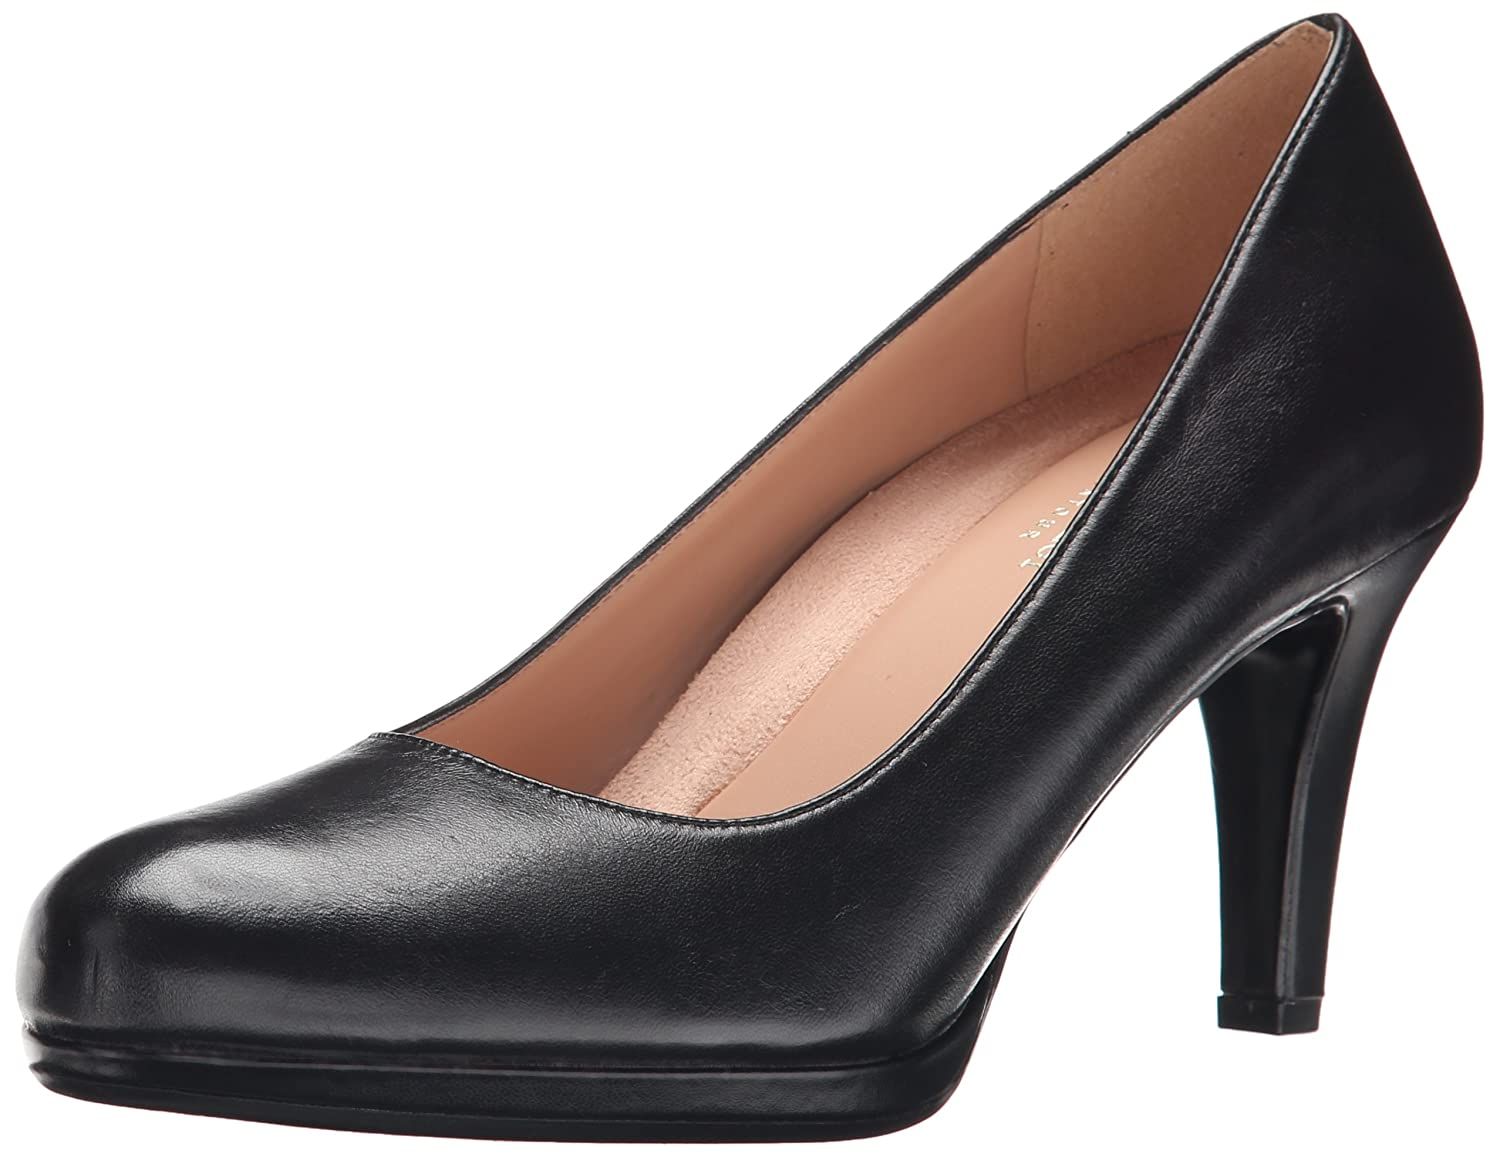 Naturalizer Women's Michelle Dress Pump B00RBVHYMI 7 W US|Black Leather